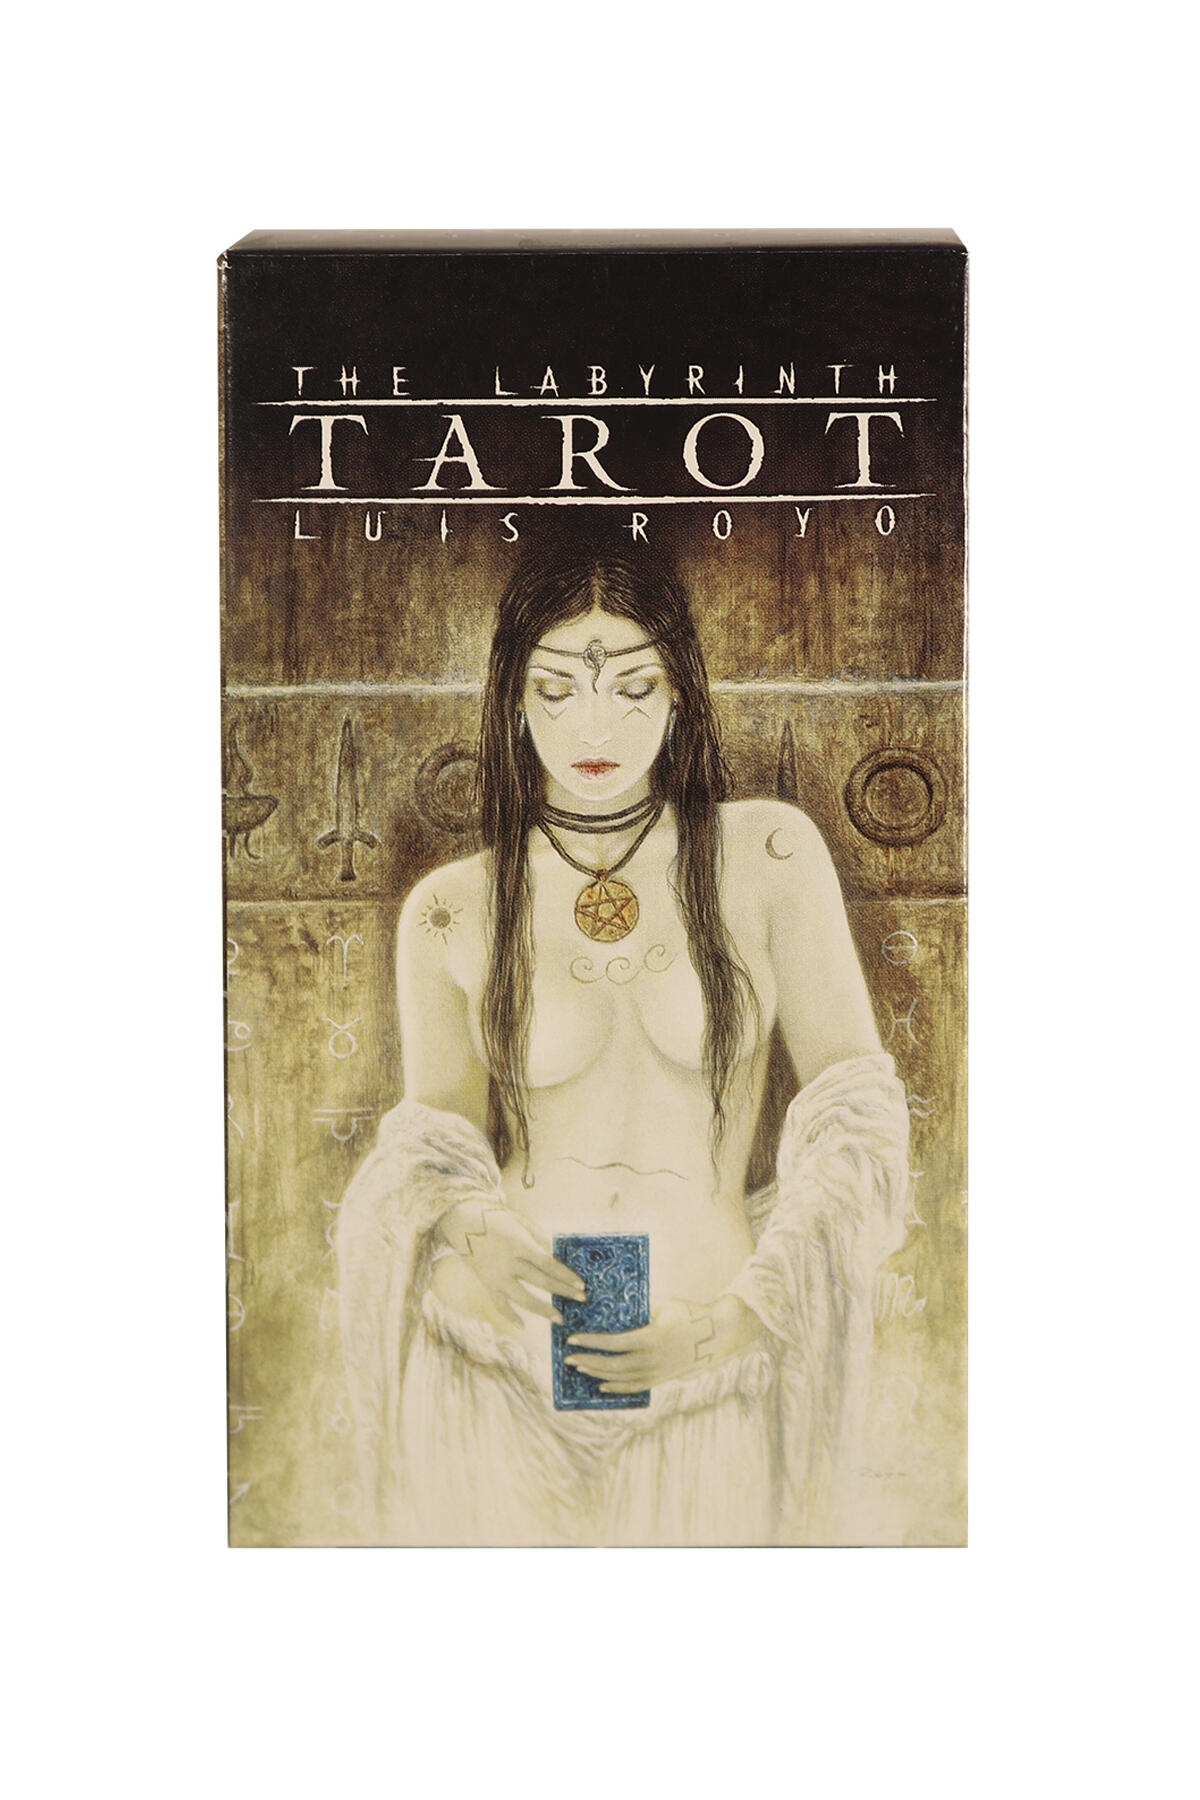 КАРТЫ - THE LABYRINTH TAROT - ЛАБИРИНТ ТАРО фото